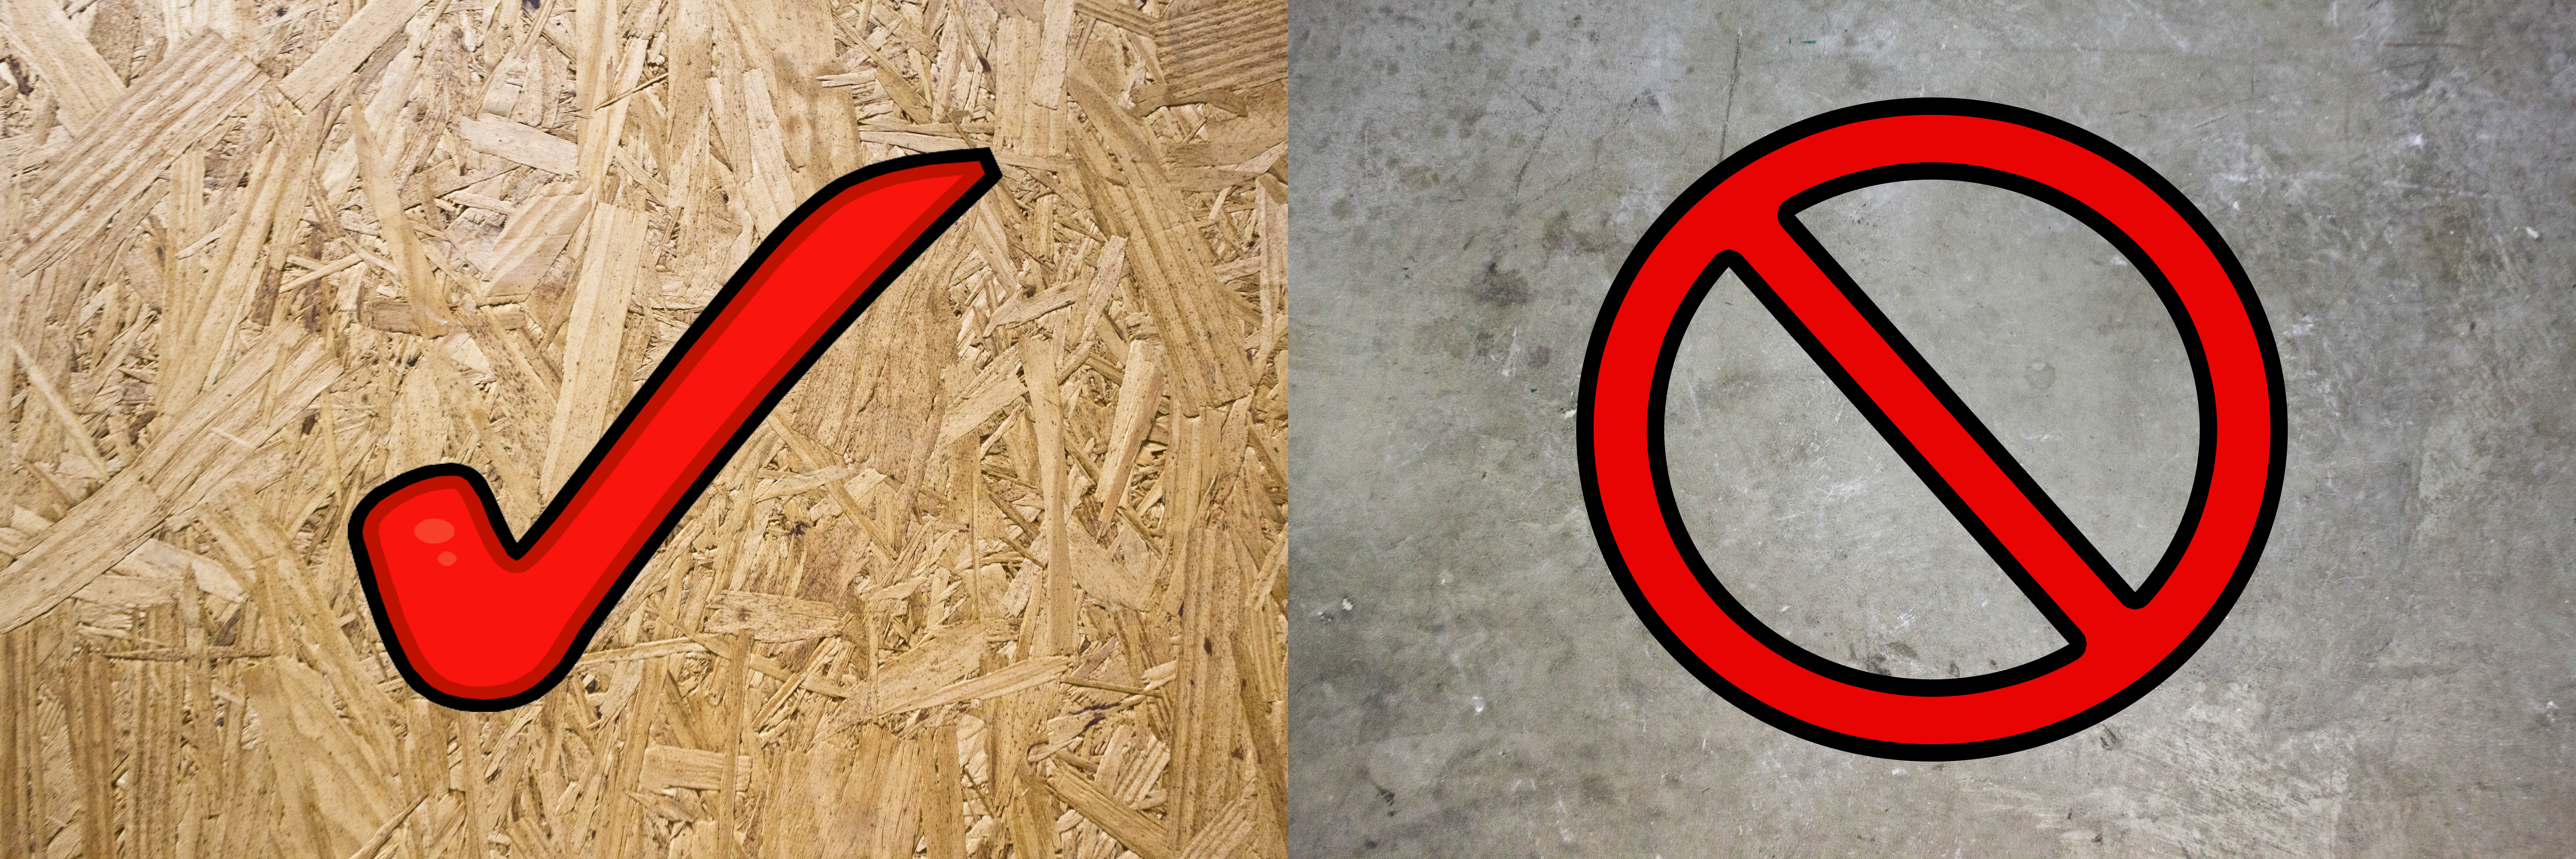 Standars Underlayment is suitable for wood subfloor installation